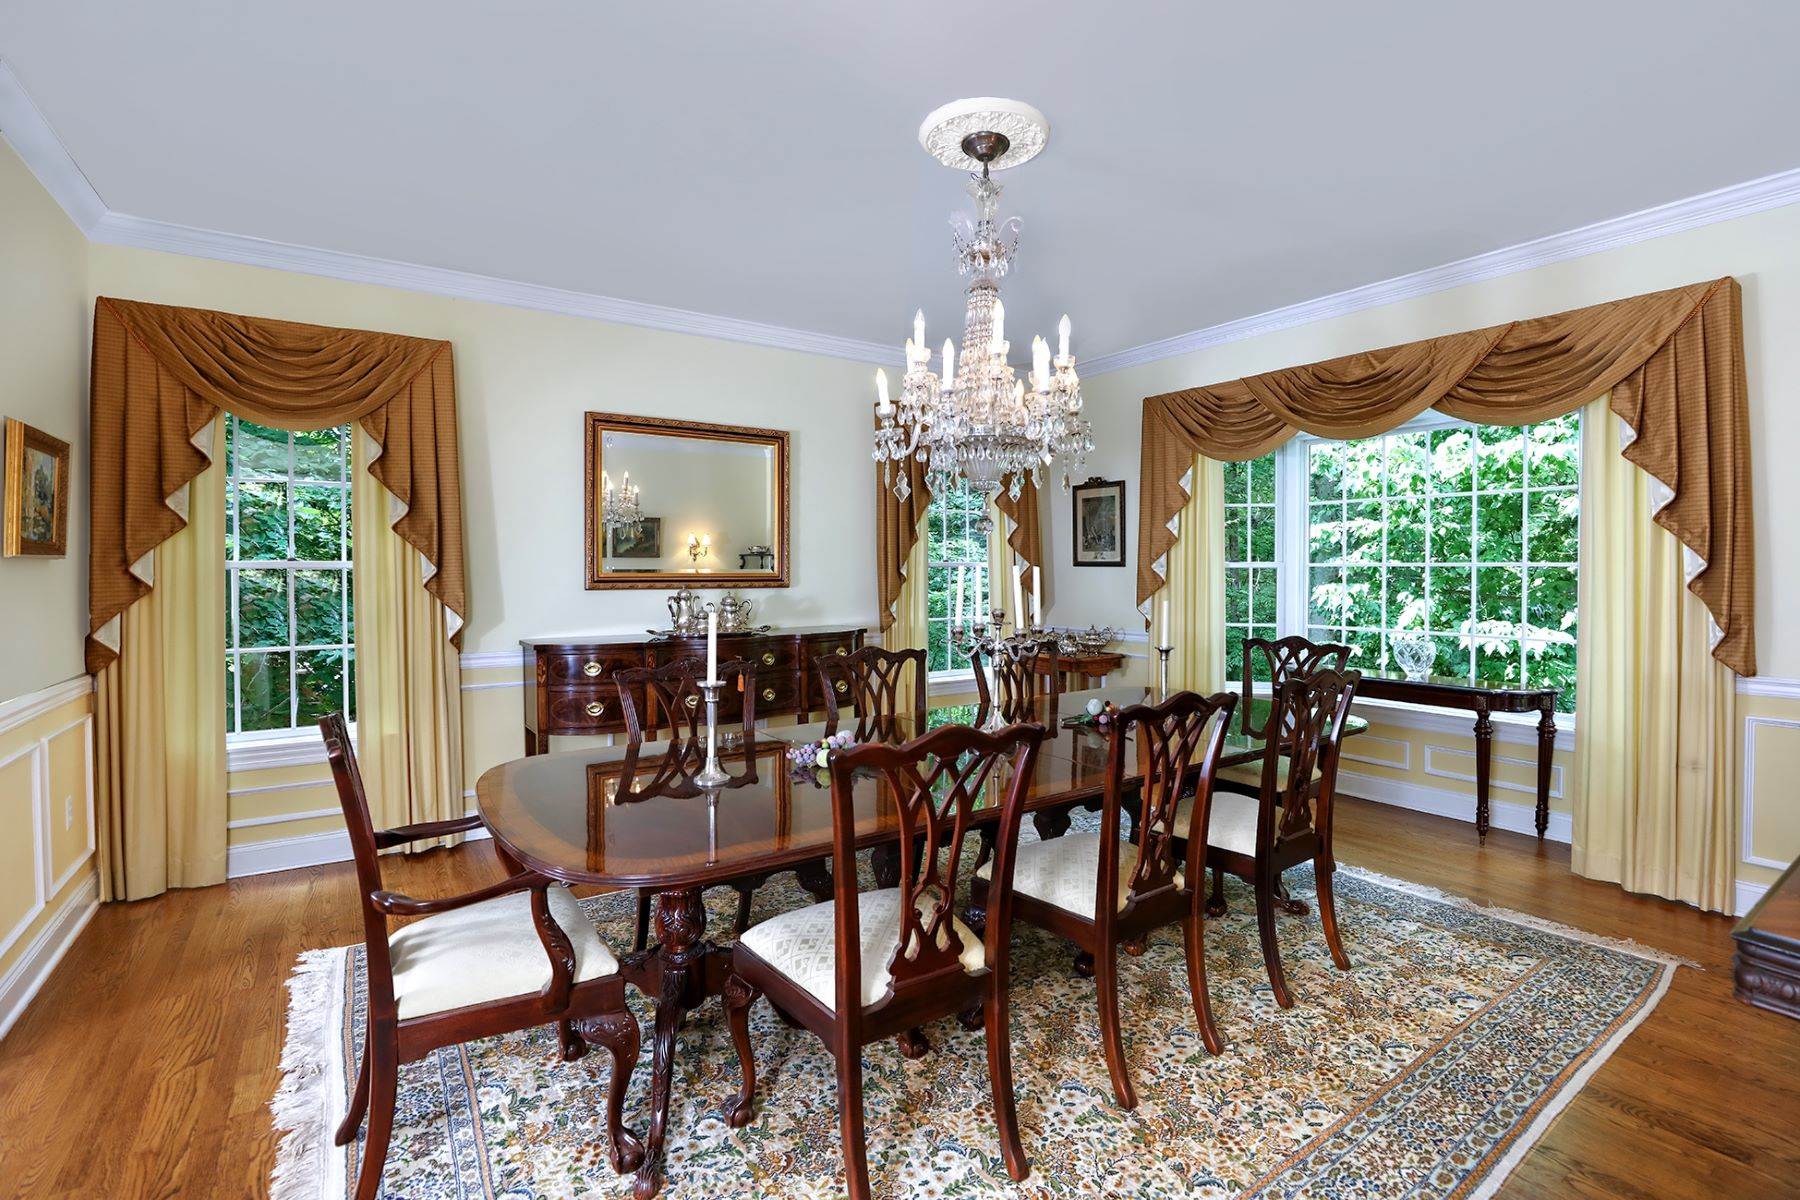 Additional photo for property listing at Exquisitely Designed In The Preserve 176 Highland Terrace, Princeton, New Jersey 08540 United States